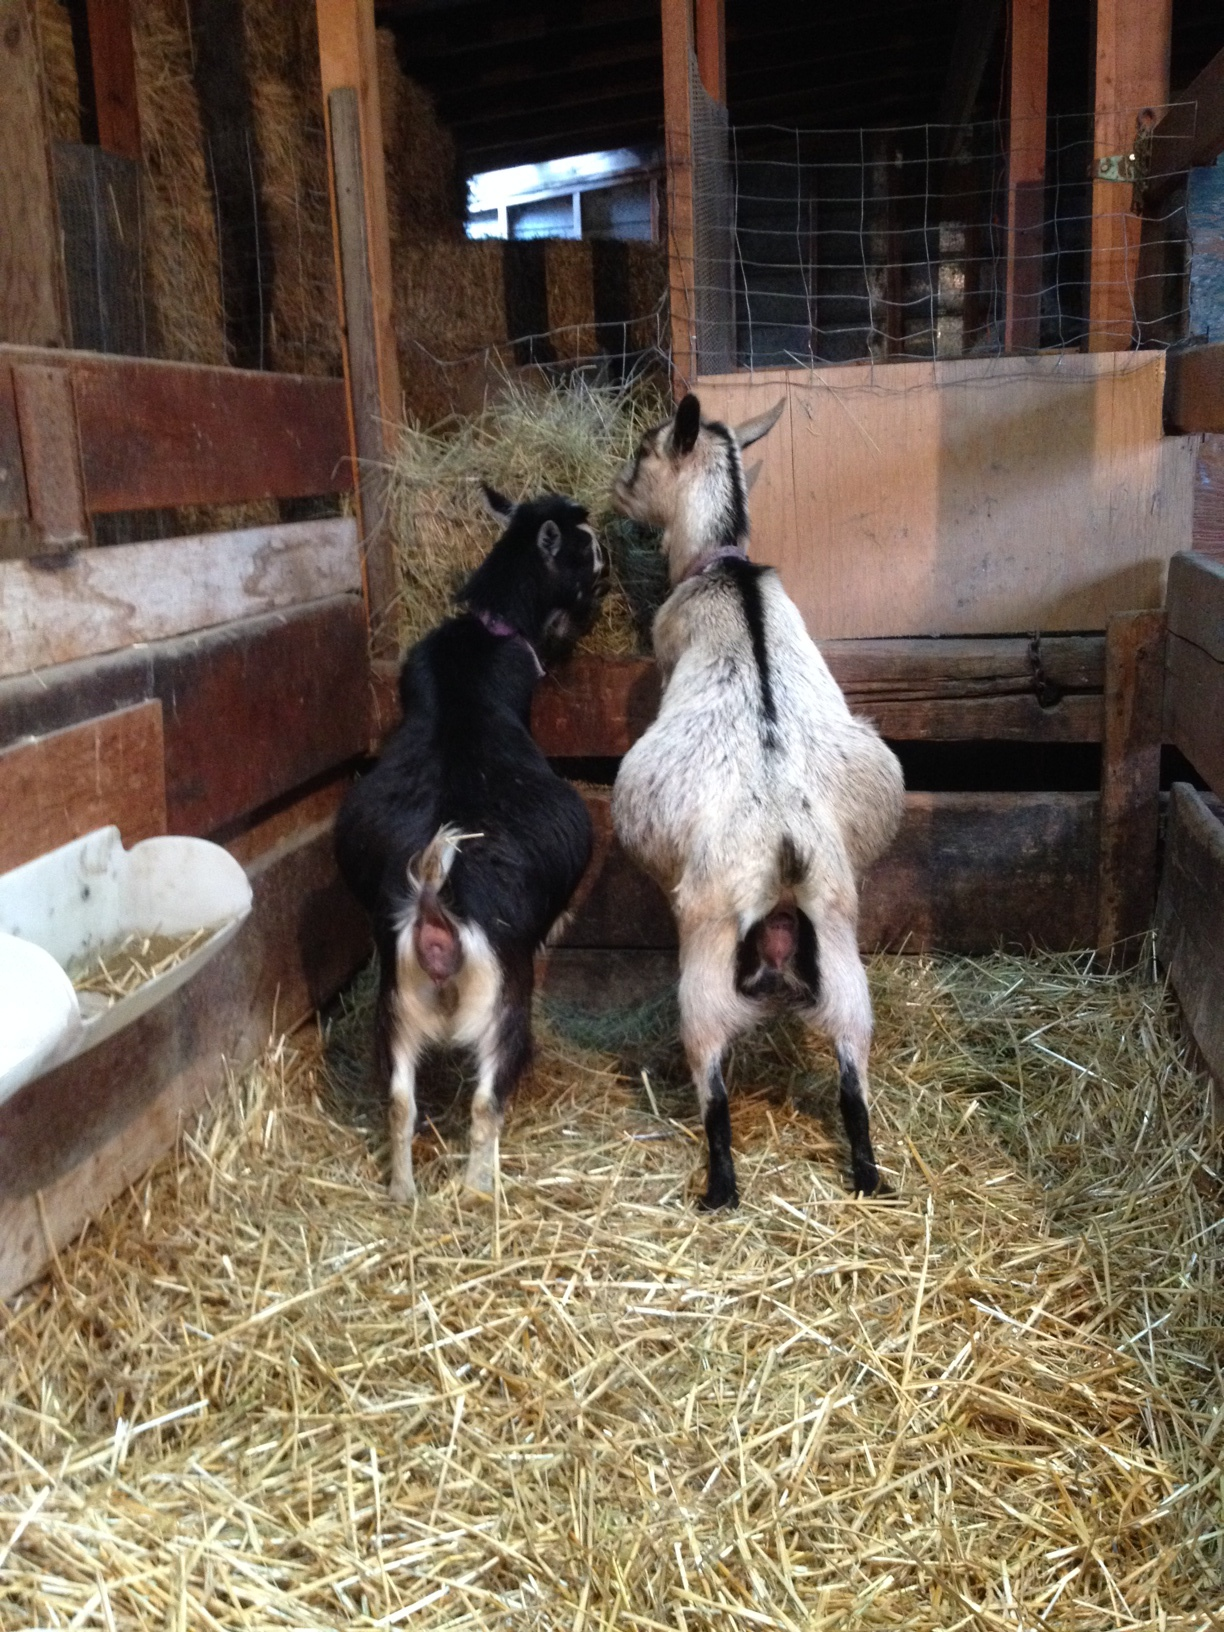 Photo taken February 17, 2014. These girls are getting big, but not ready for kidding just yet.